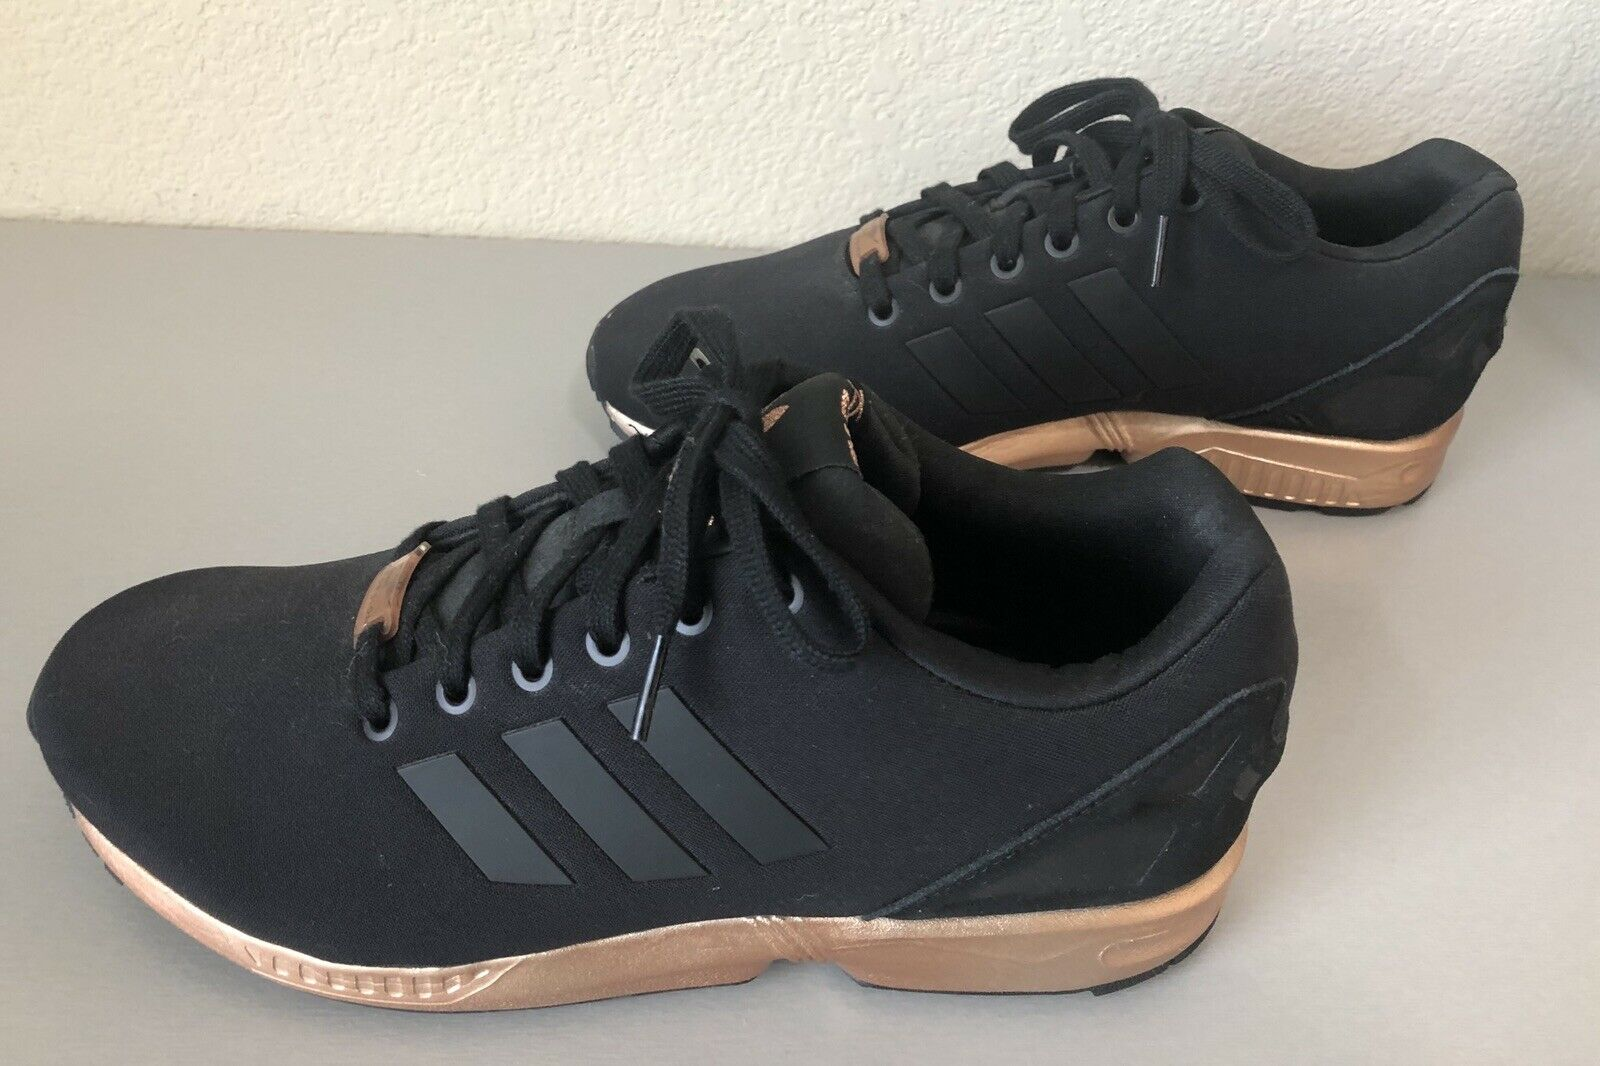 super popular 4440c 6633f WOMENS ADIDAS ZX FLUX CORE BLACK COPPER ROSE GOLD BRONZE S78977 LIMITED  EDITION